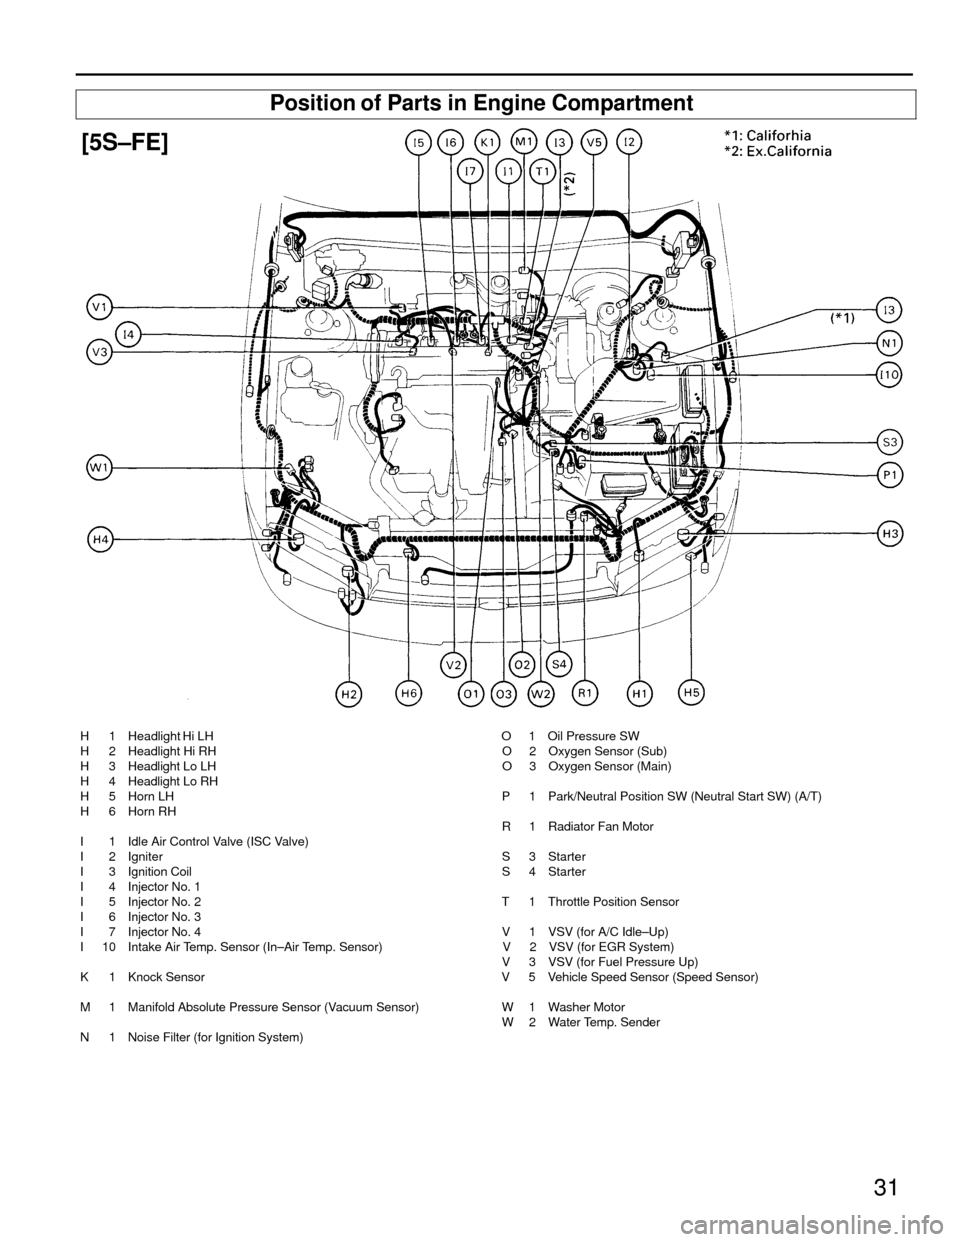 hight resolution of toyota camry 1994 xv10 4 g wiring diagrams workshop manual page 31